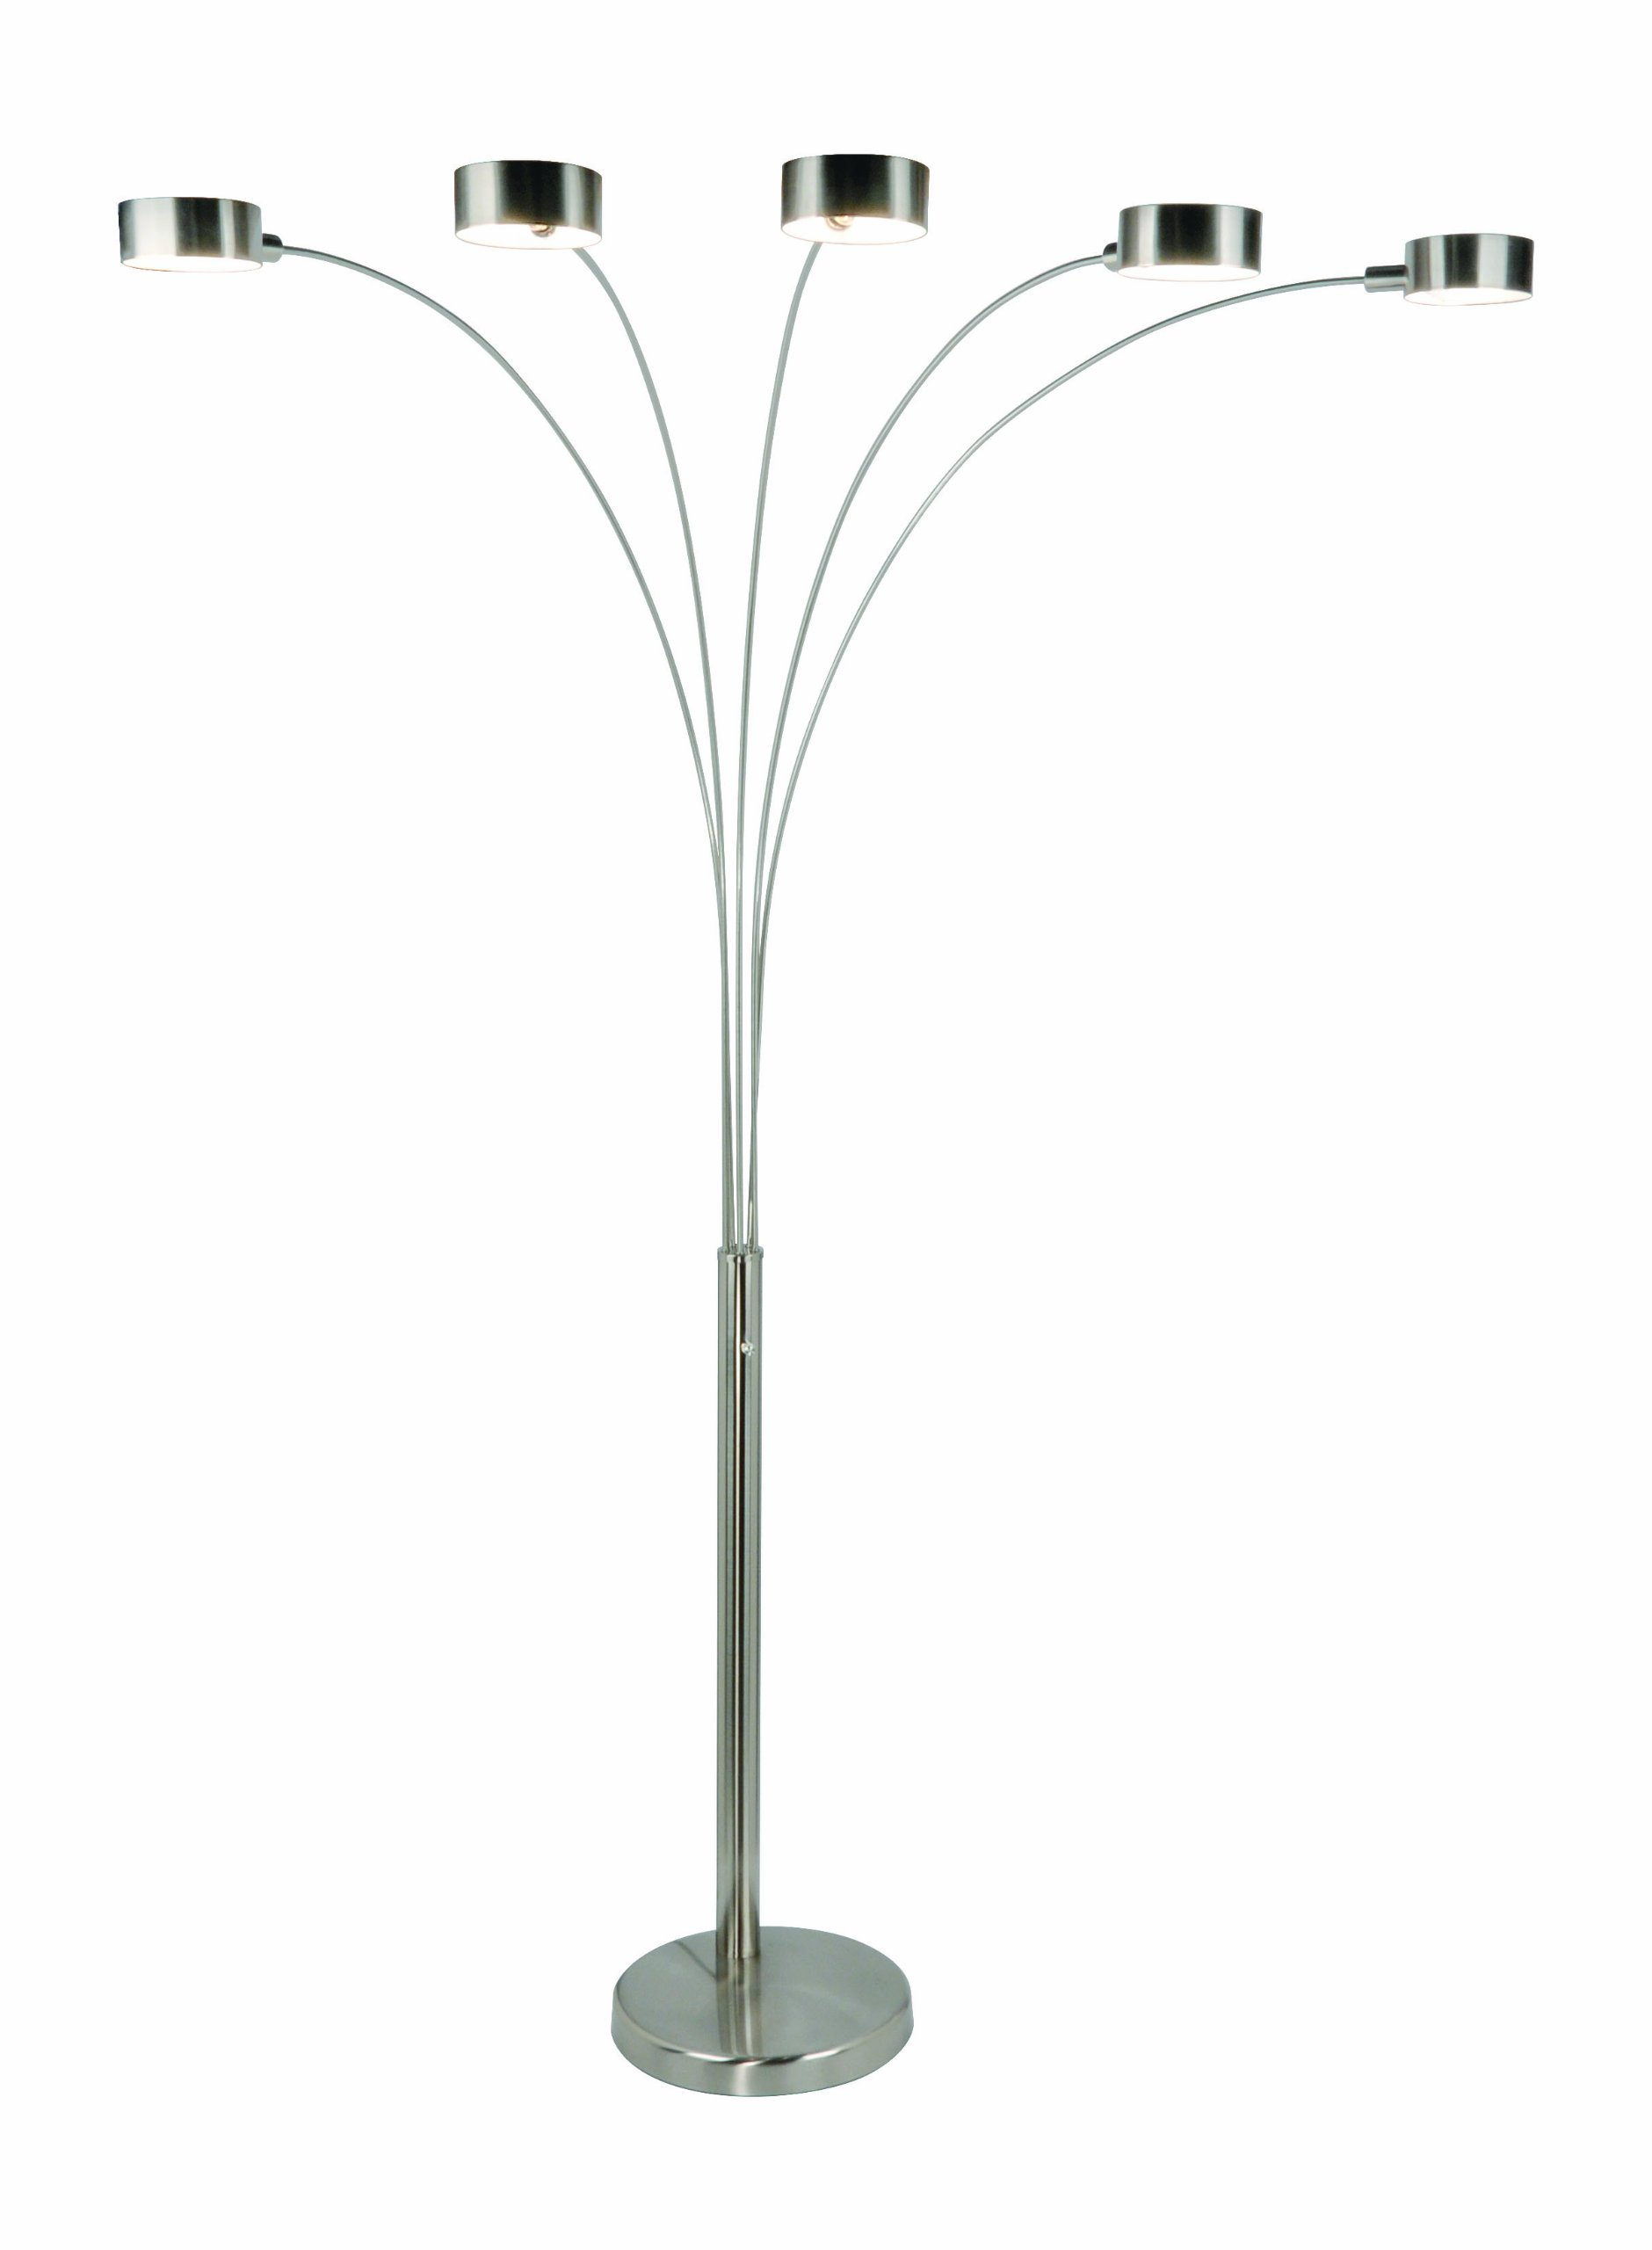 Artiva USA Micah - Modern & Stylish - 5 Arc Brushed Steel Floor Lamp w/ Dimmer Switch, 360 Degree Rotatable Shades - Dim Options - Bright & Attractive - Easy Assembly - Solid Construction - Stainless Steel - Industrial & Mid-Century by Artiva USA (Image #3)